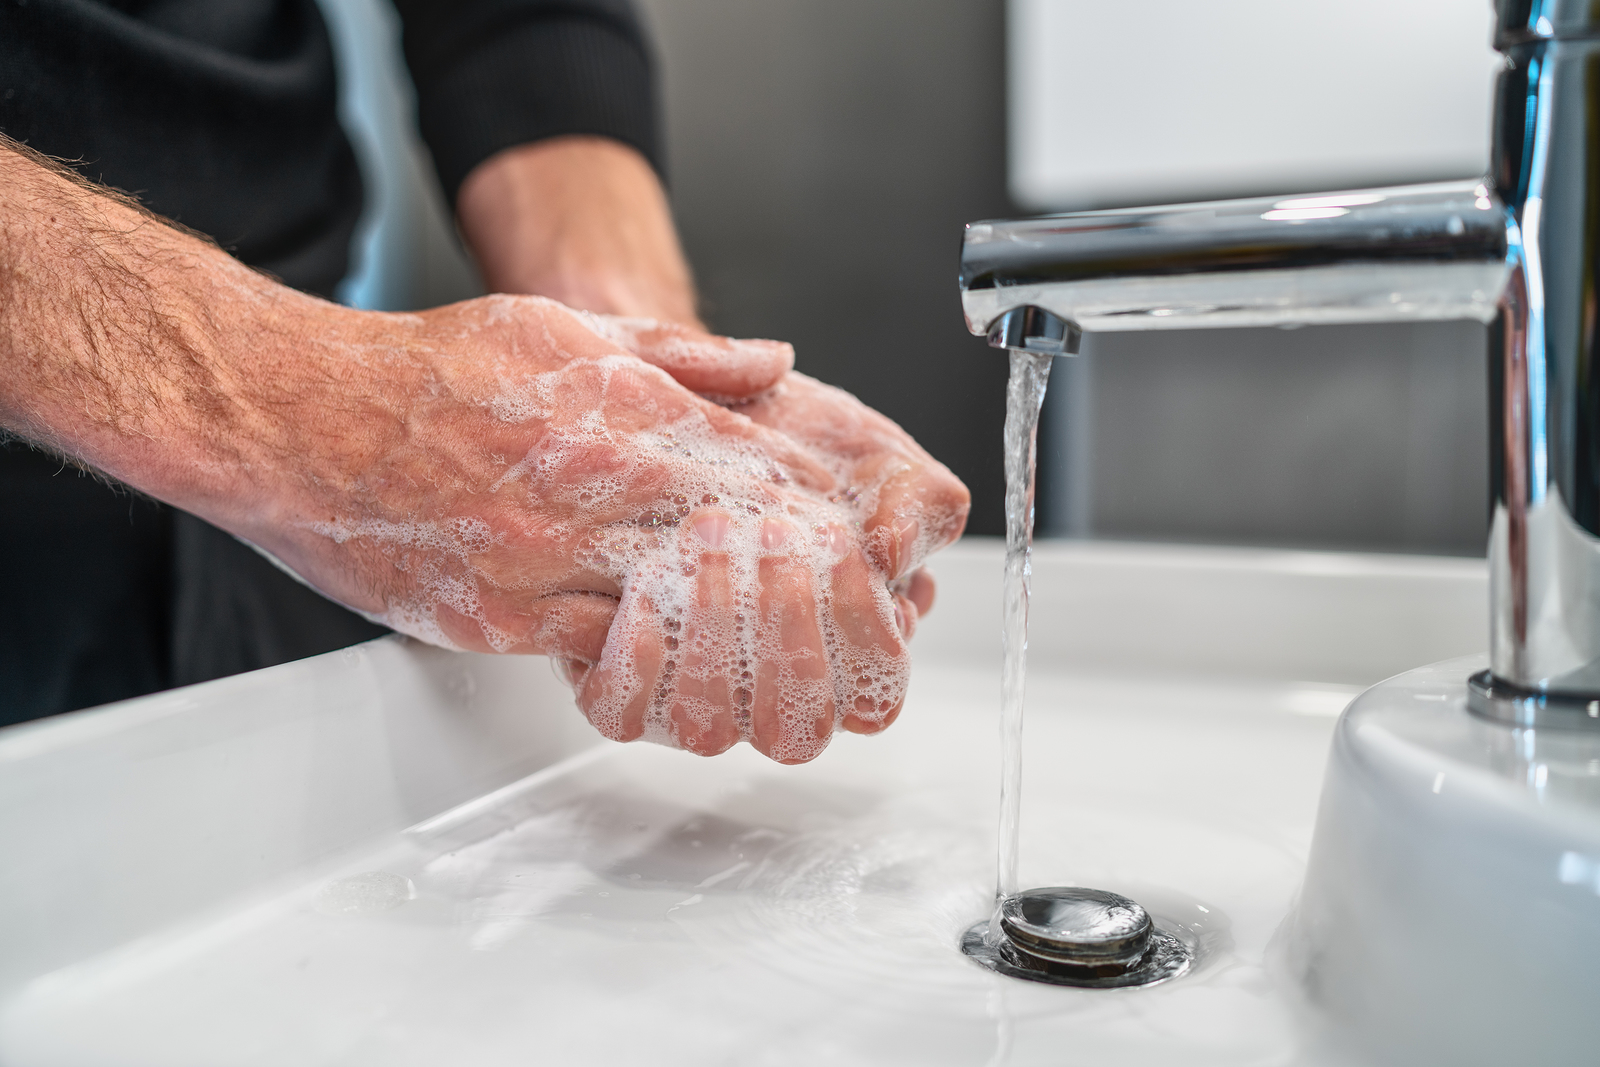 An older man washing his hands to help prevent the spread of germs